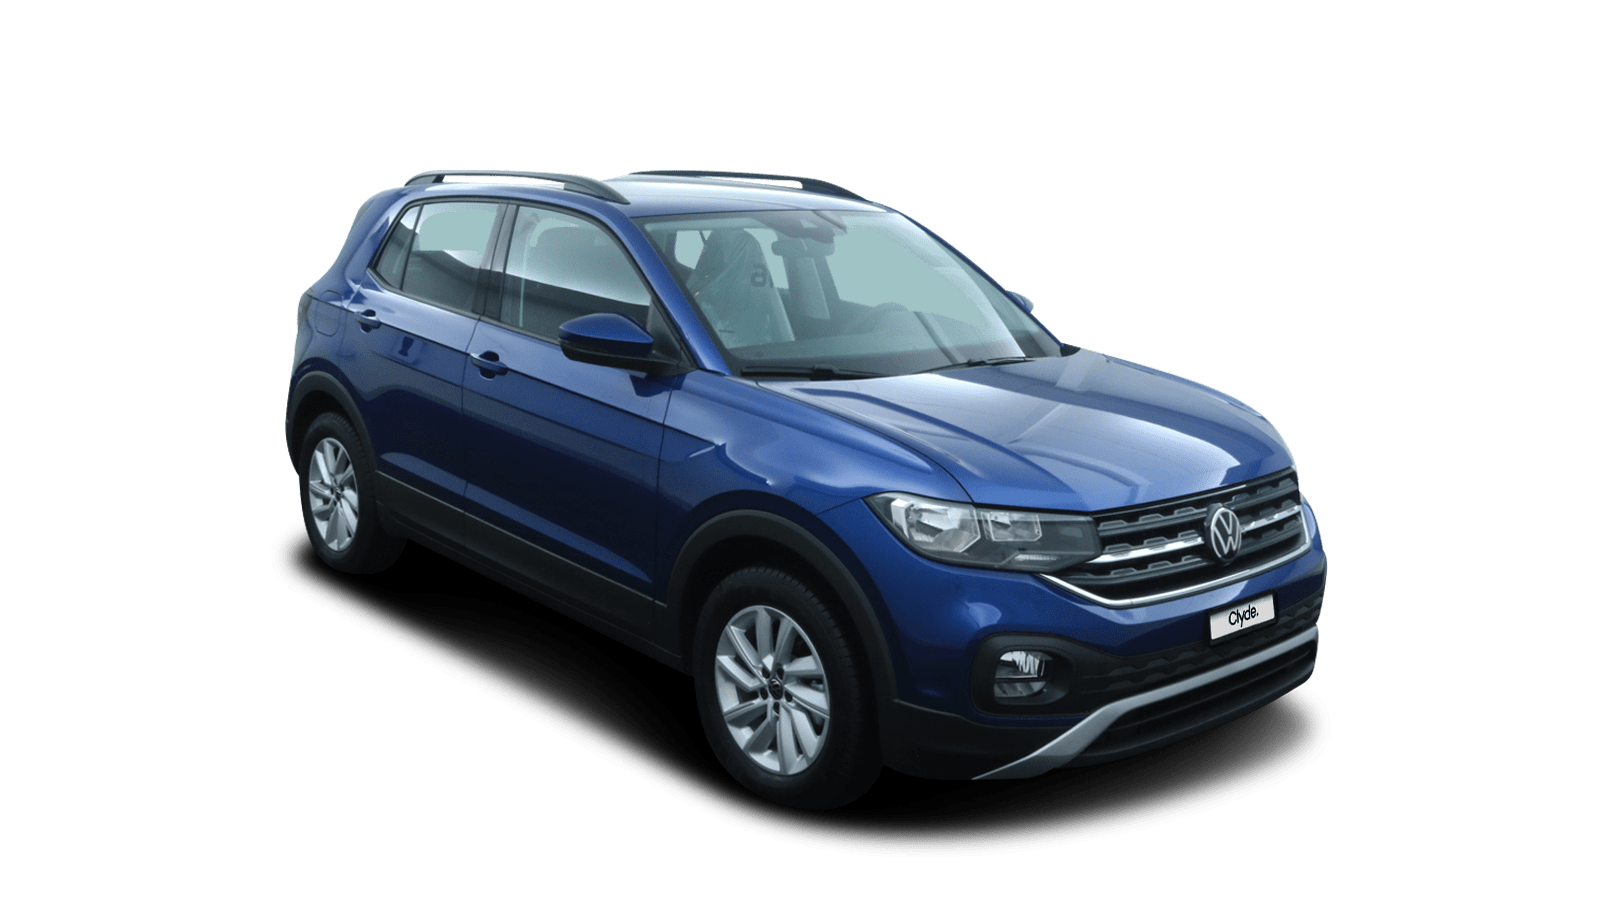 VW T-Cross Blue front - Clyde car subscription